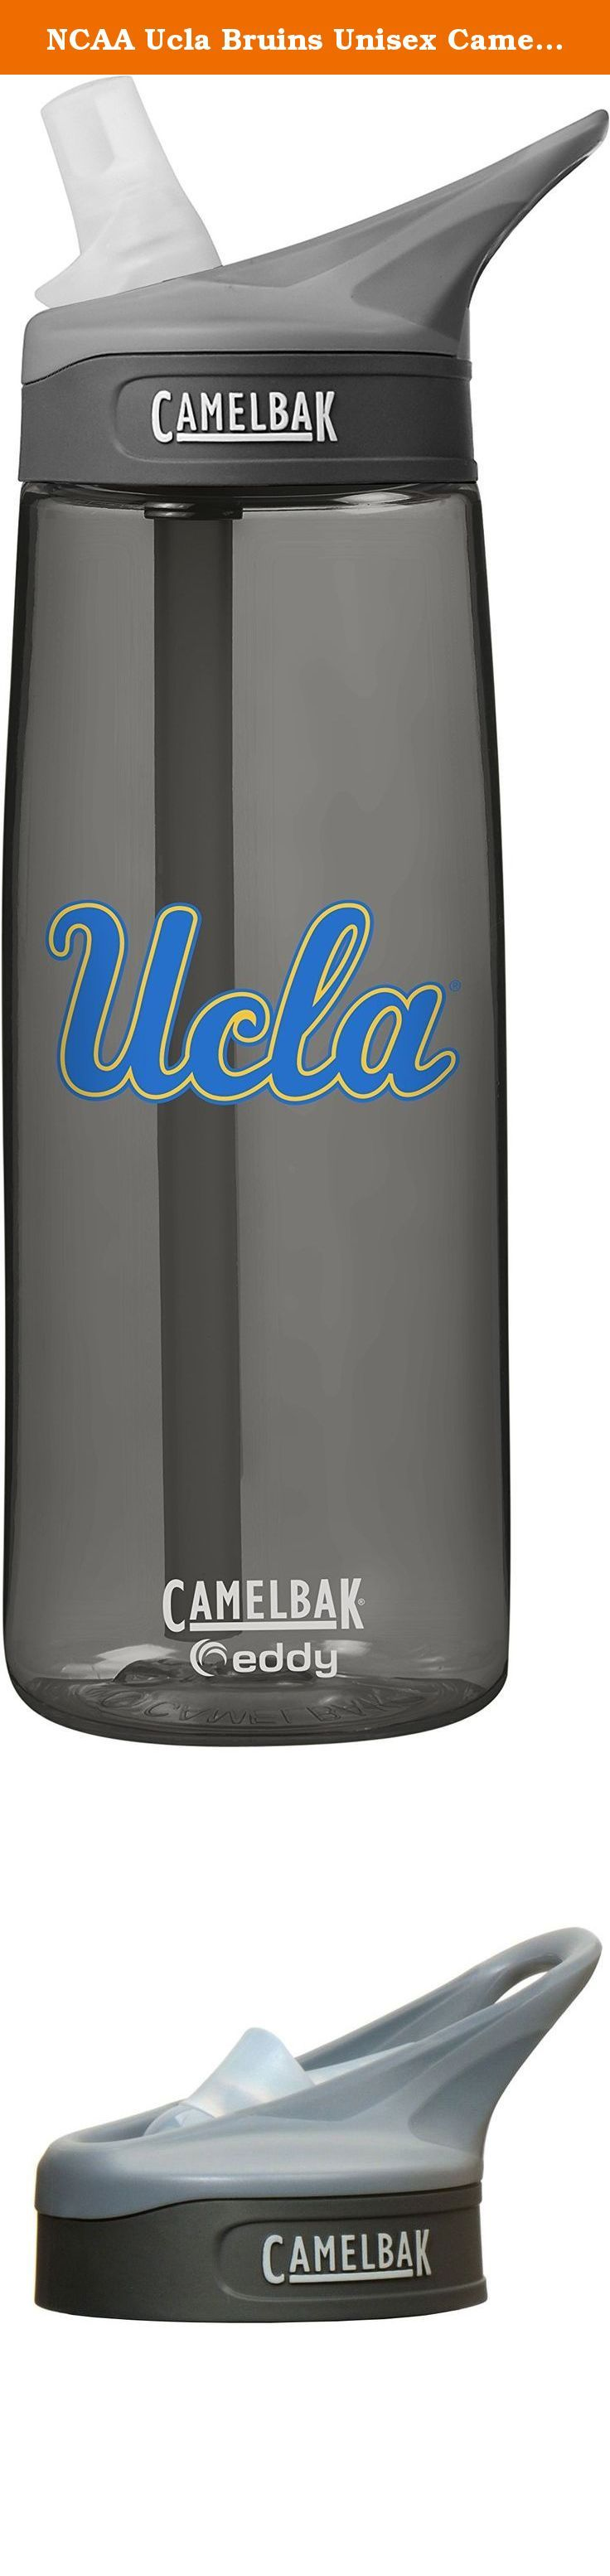 NCAA Ucla Bruins Unisex CamelBak Eddy 75L Collegiate Water Bottle, CHARCOAL, 75 Liter. The Eddy bottle makes portable hydration simple-just flip, Bite and sip. The 75L size fits easily in the hand and is compatible with most cup holders. The loop handle makes it easy to clip to a pack or comfortably carry in the crook of your finger. The spill-proof design, durable construction and BPA-free materials make it an ideal bottle for work or play.